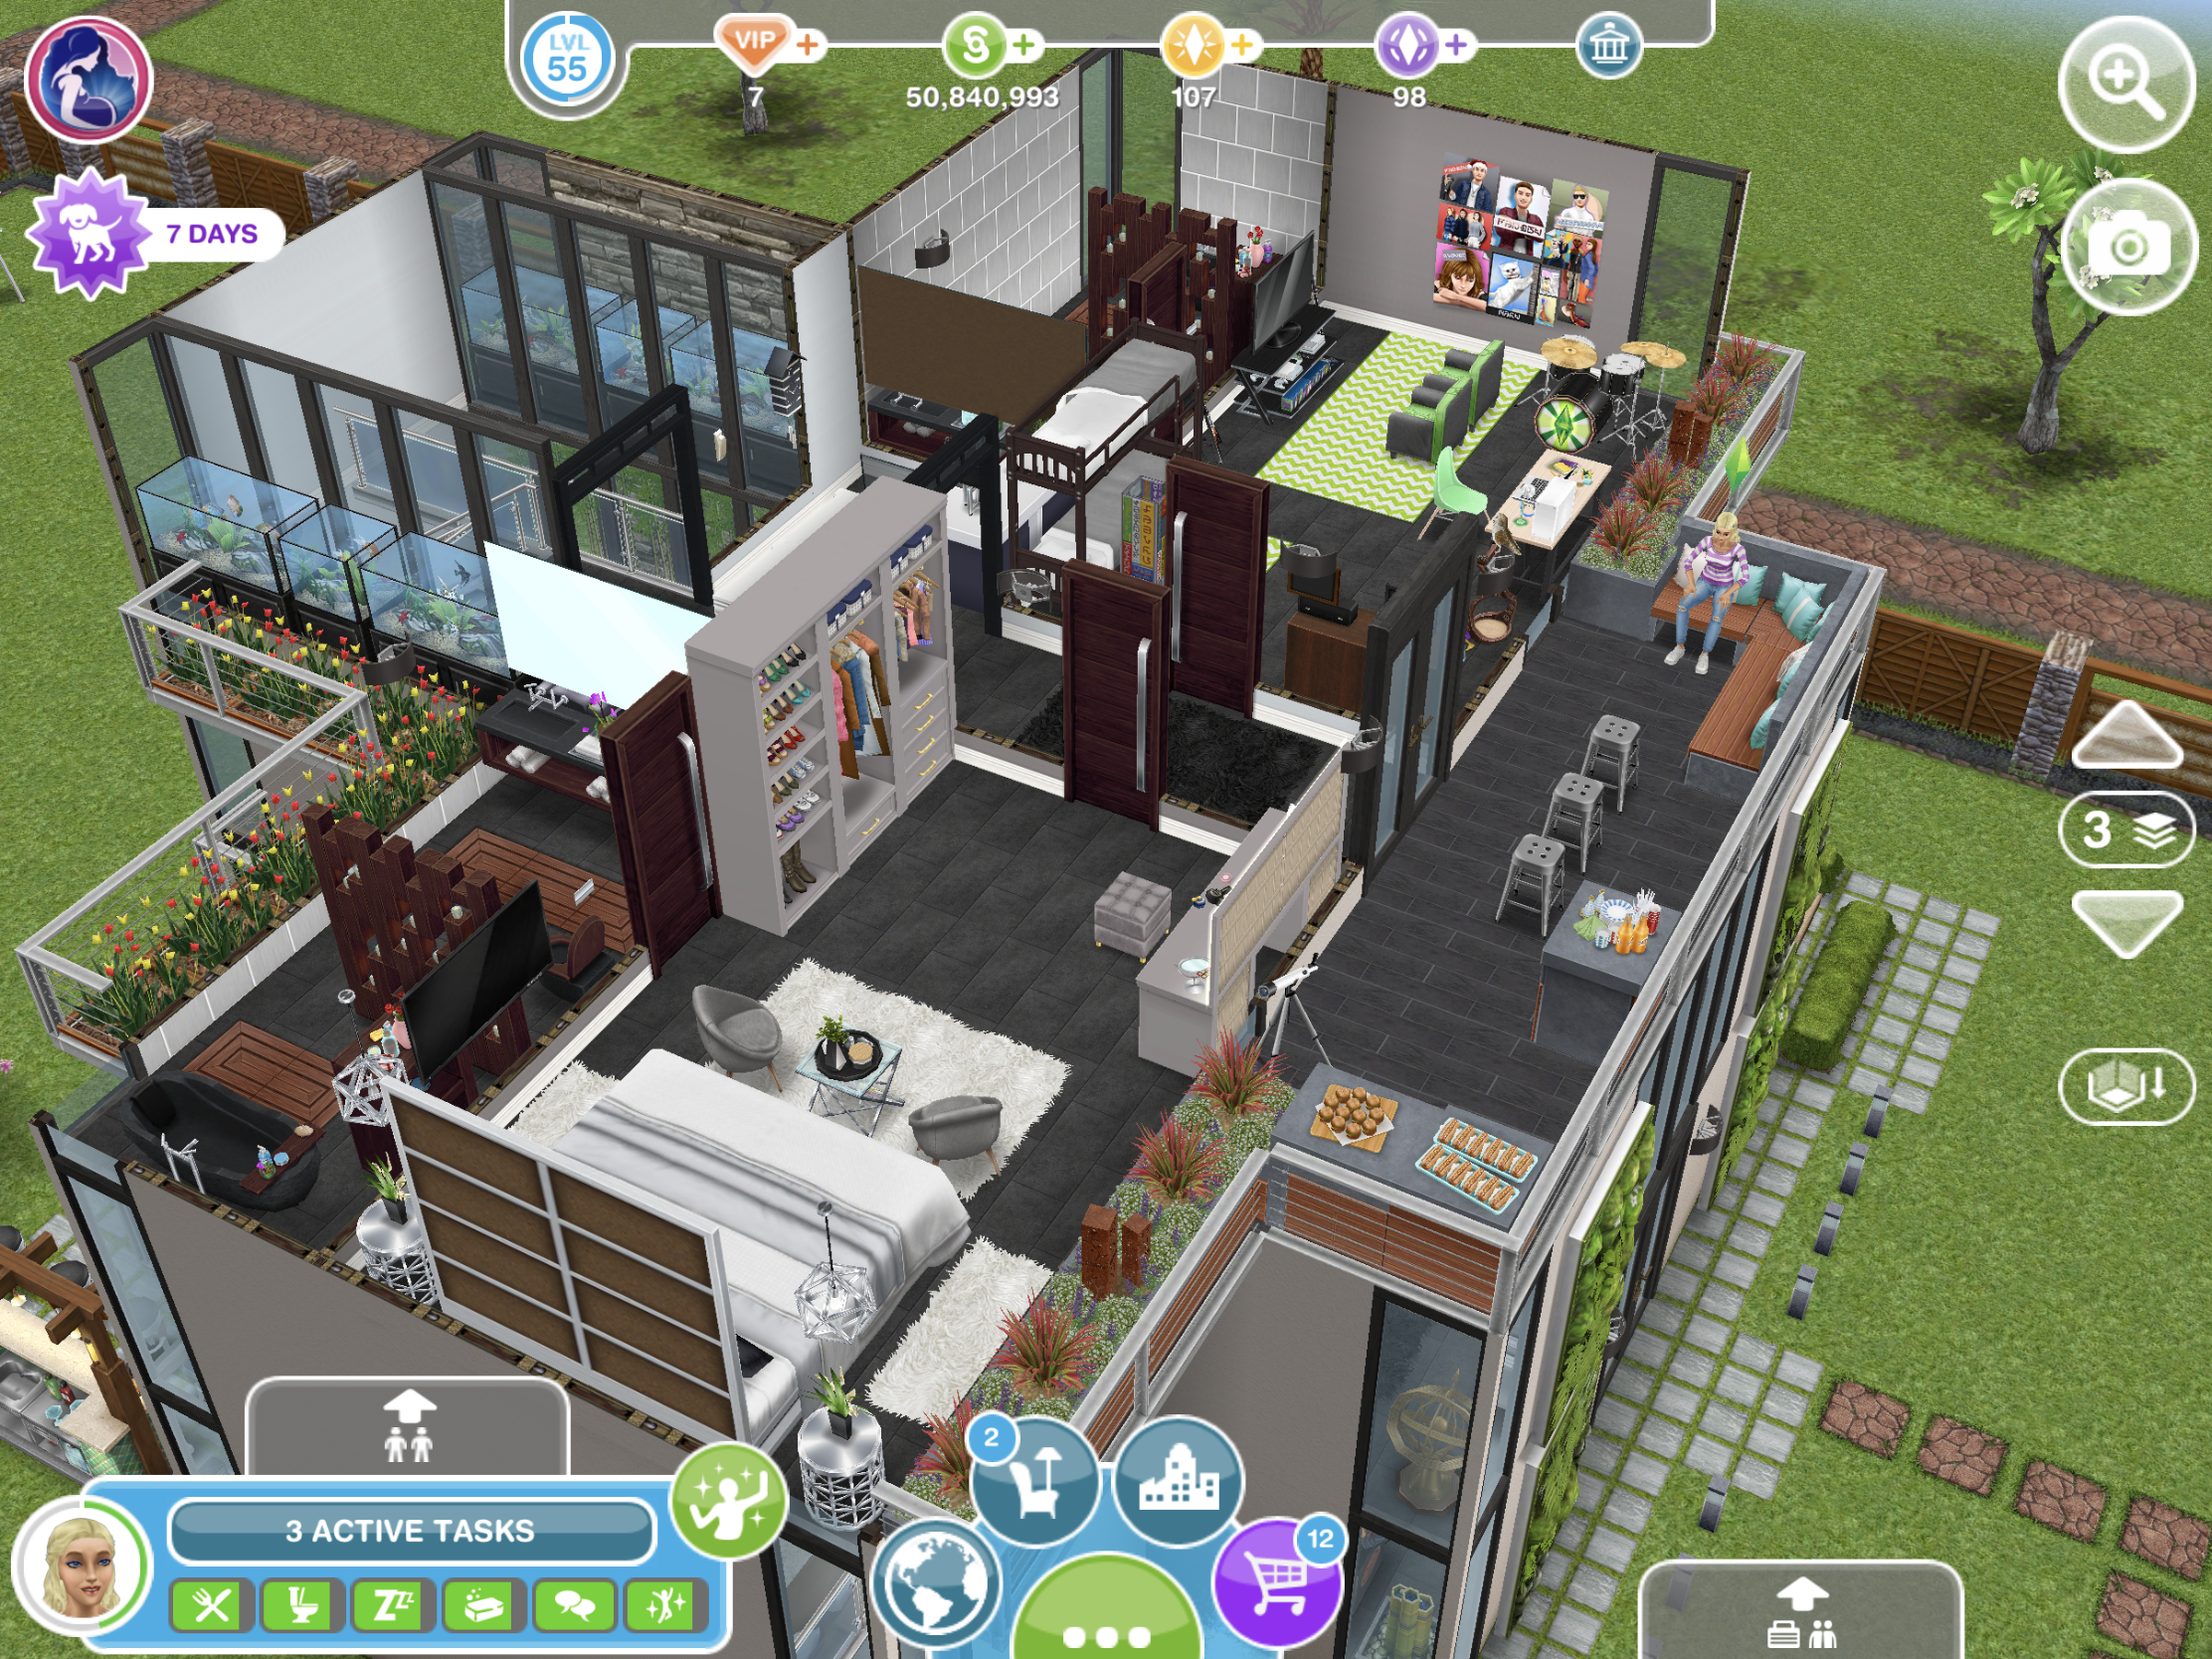 002 View 06 Sims Freeplay Houses House Styles Mansions